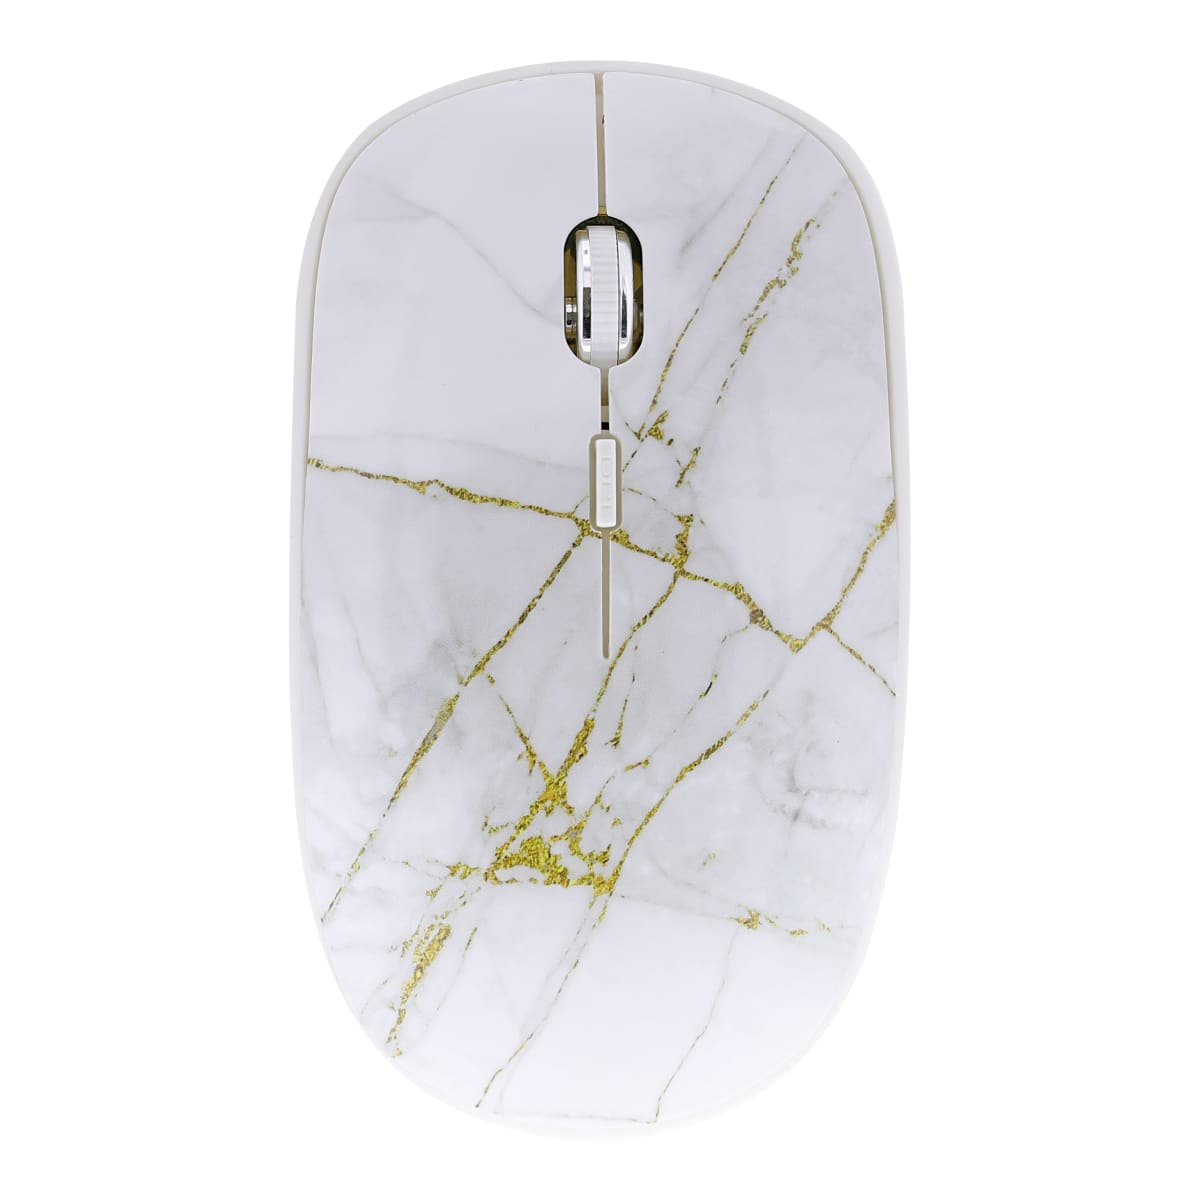 GOLD wireless mouse EXCLUSIV